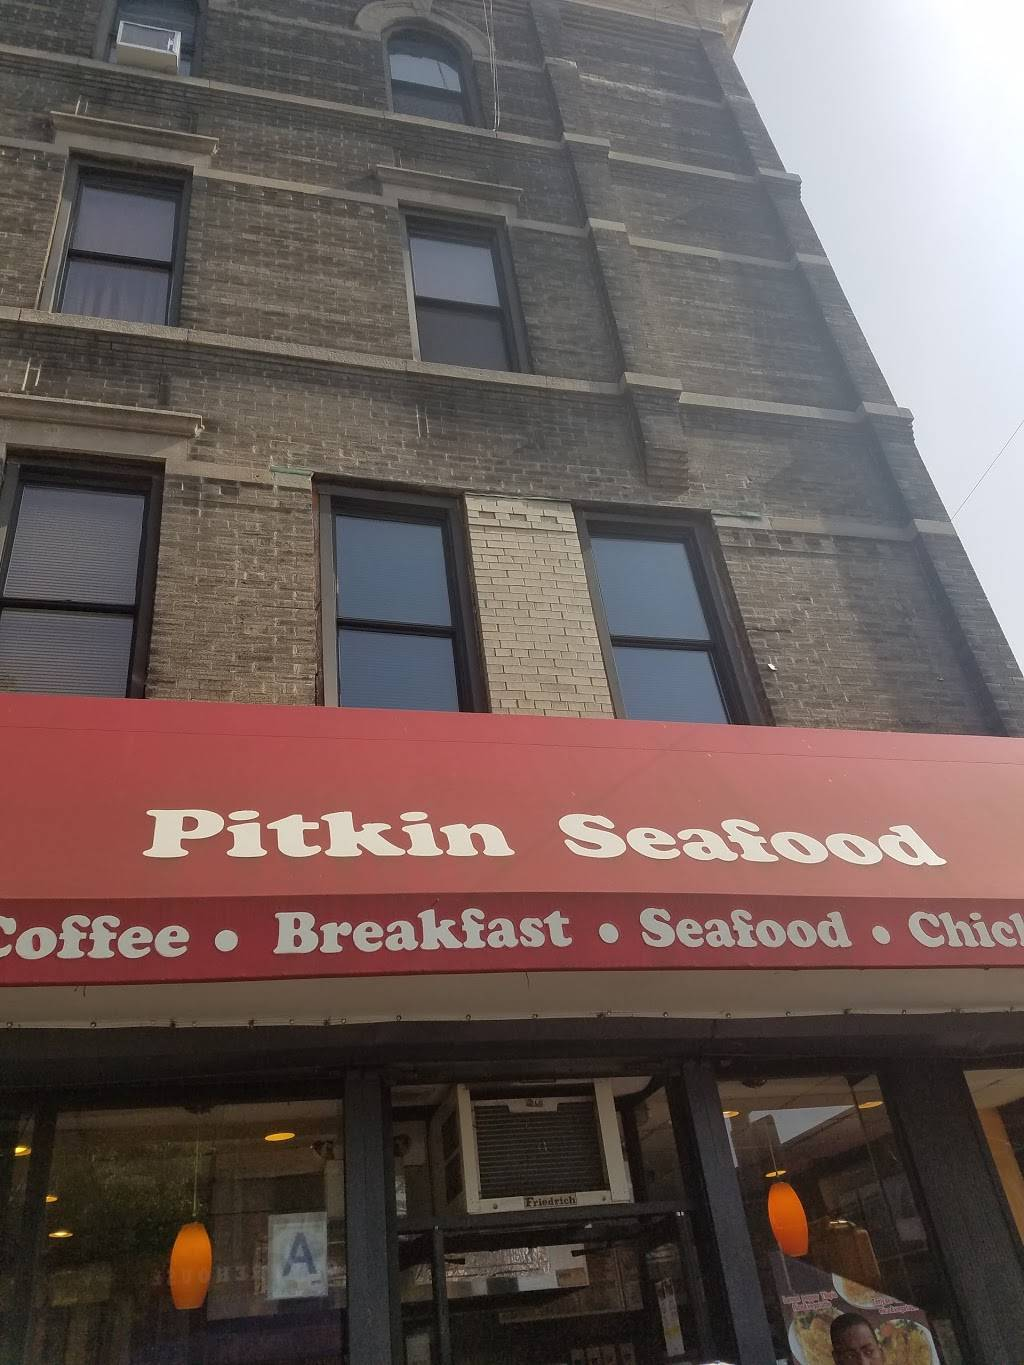 Pitkin Seafood | restaurant | 1670 Pitkin Ave, Brooklyn, NY 11212, USA | 7183461670 OR +1 718-346-1670